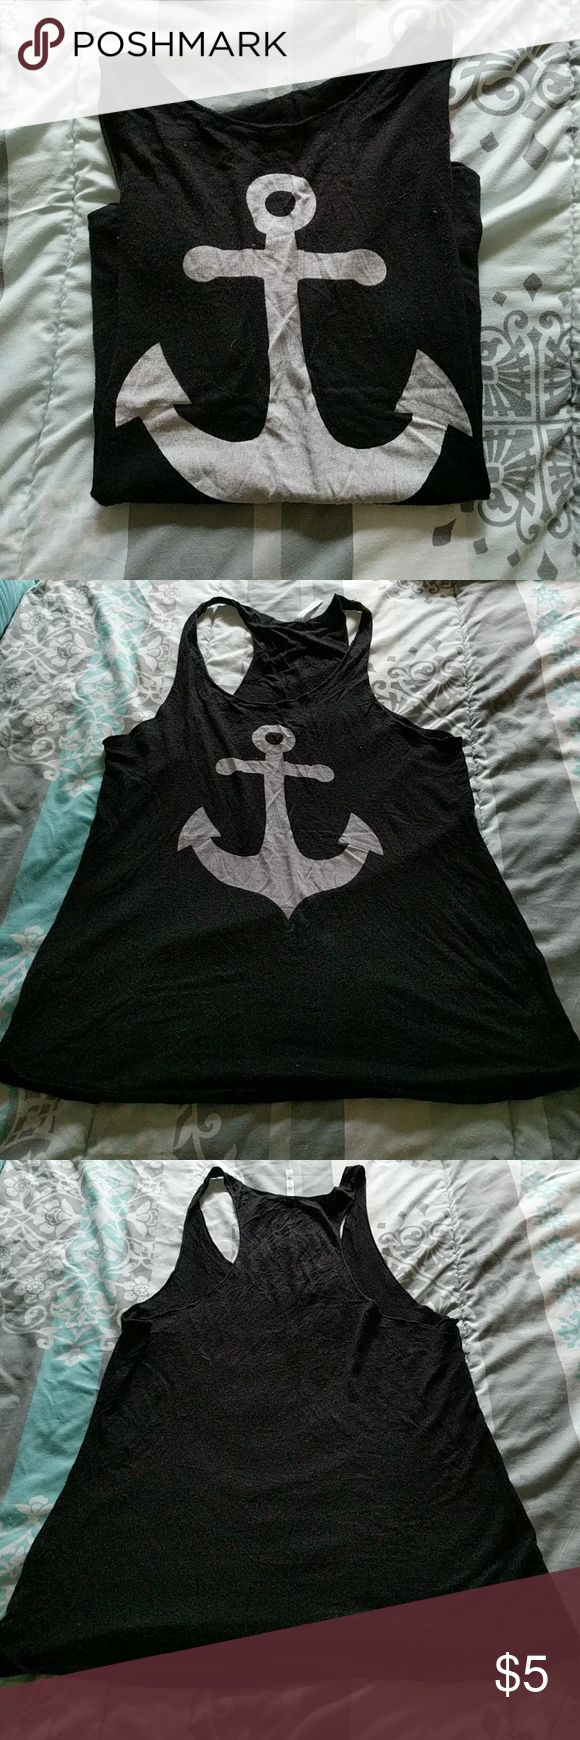 G & G Anchor Tank Top This top is in used condition. No size tag, but this appears to be a Large and would possibly fit XL as well.  ALL listings are priced at $5 (final), so no offers will be considered. However, I do provide a discount for bundles of 4+!   NOTICE: If you create a bundle and it weighs more than 5 LBS, I will cancel the order. I can not pay for the added shipping cost. Please keep this in mind.   My home is a SMOKE FREE / KITTY FRIENDLY home. Thank you!! :) G & G Tops Tank…